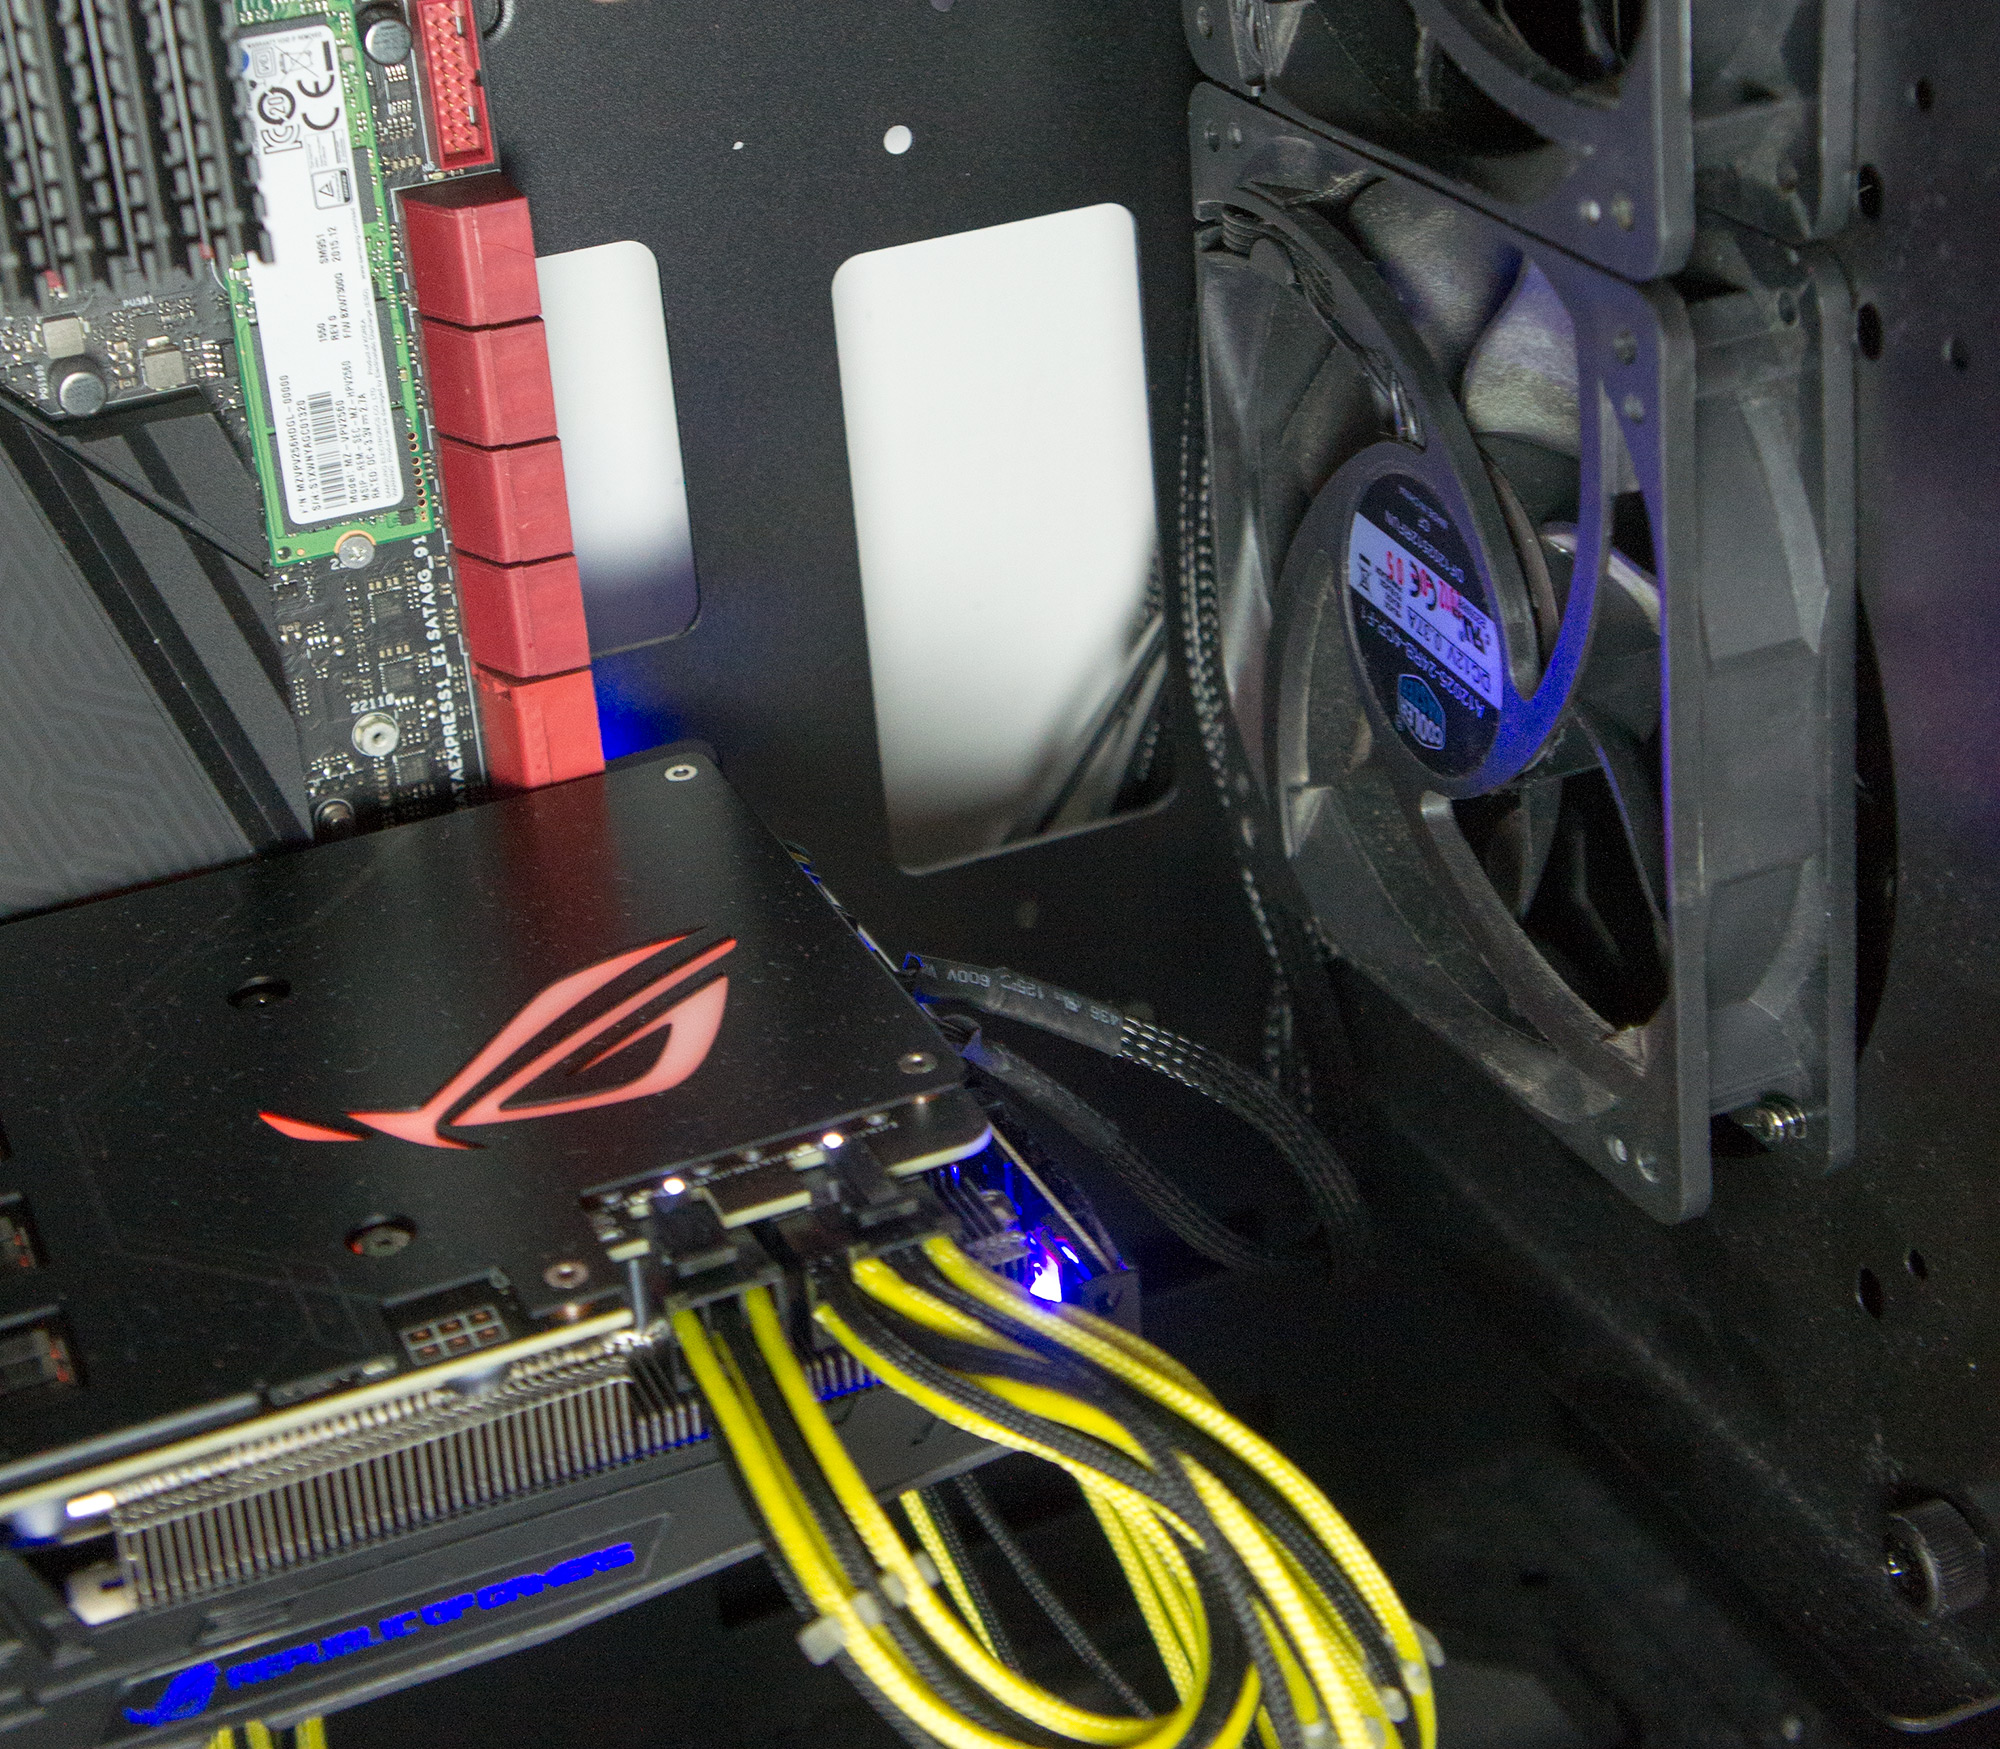 What Is Asus Fancontrol On The Rog Strix Gtx 1080 And 1070 Wiring Two Fans In Series Fan Connect 2